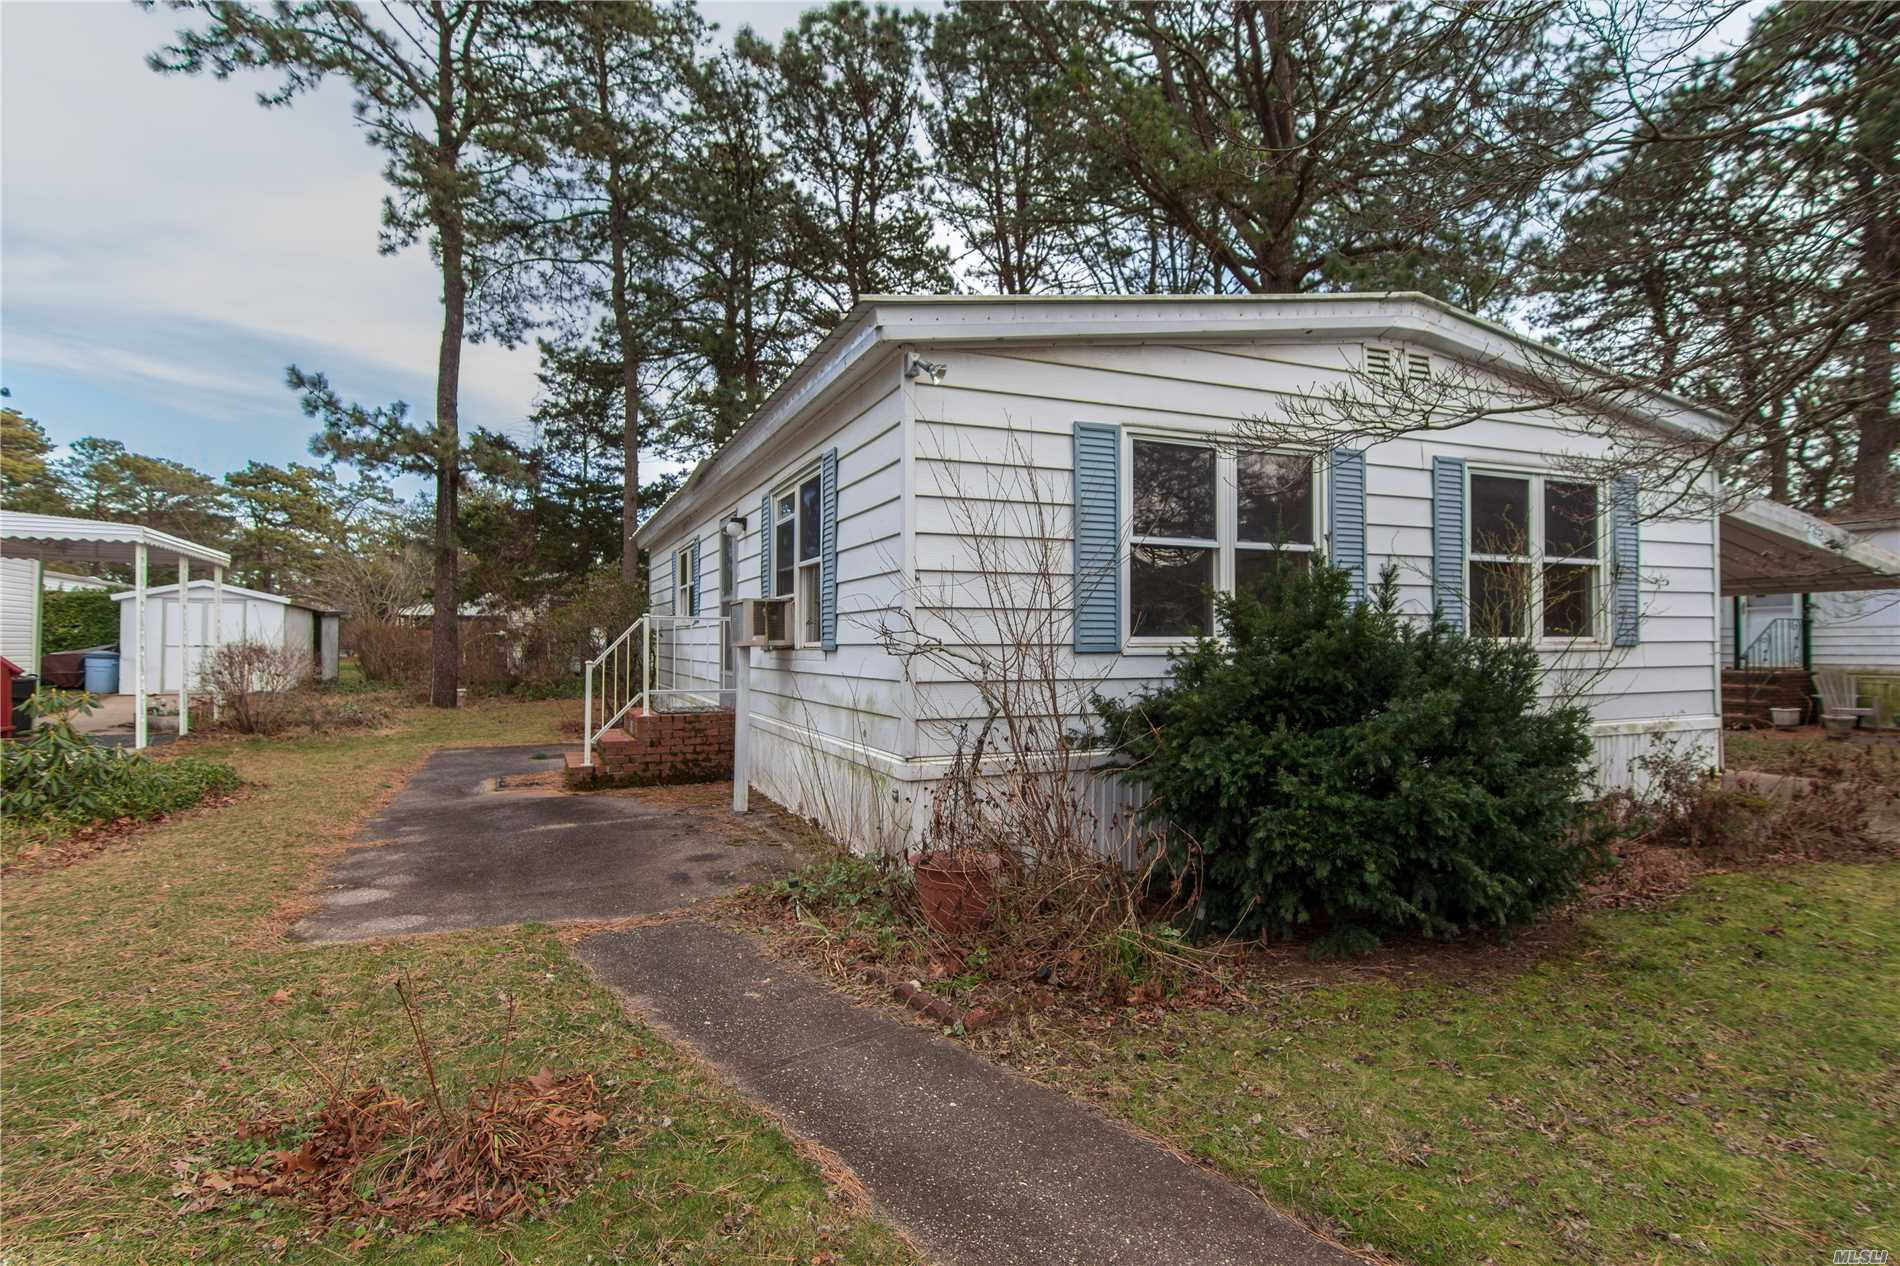 Totally Renovated Double Wide.55 And Over Community.Cash Only.All New Sub-Floors, New Laminate Floors, New Windows.New Kitchen, All New Stainless Steel Appliances. New Titled Full Bath. New Sheet Rock, And Insulation. Two Bedrooms, Full Bath, Formal Dining Room, And Kitchen. Carport, And Shed. Land Rent Is 938 Per Month Which Includes Taxes, Trash And Snow Removal, Water, Cesspool Maintenance, Use Of The Clubhouse And Southampton Town Beach Rights